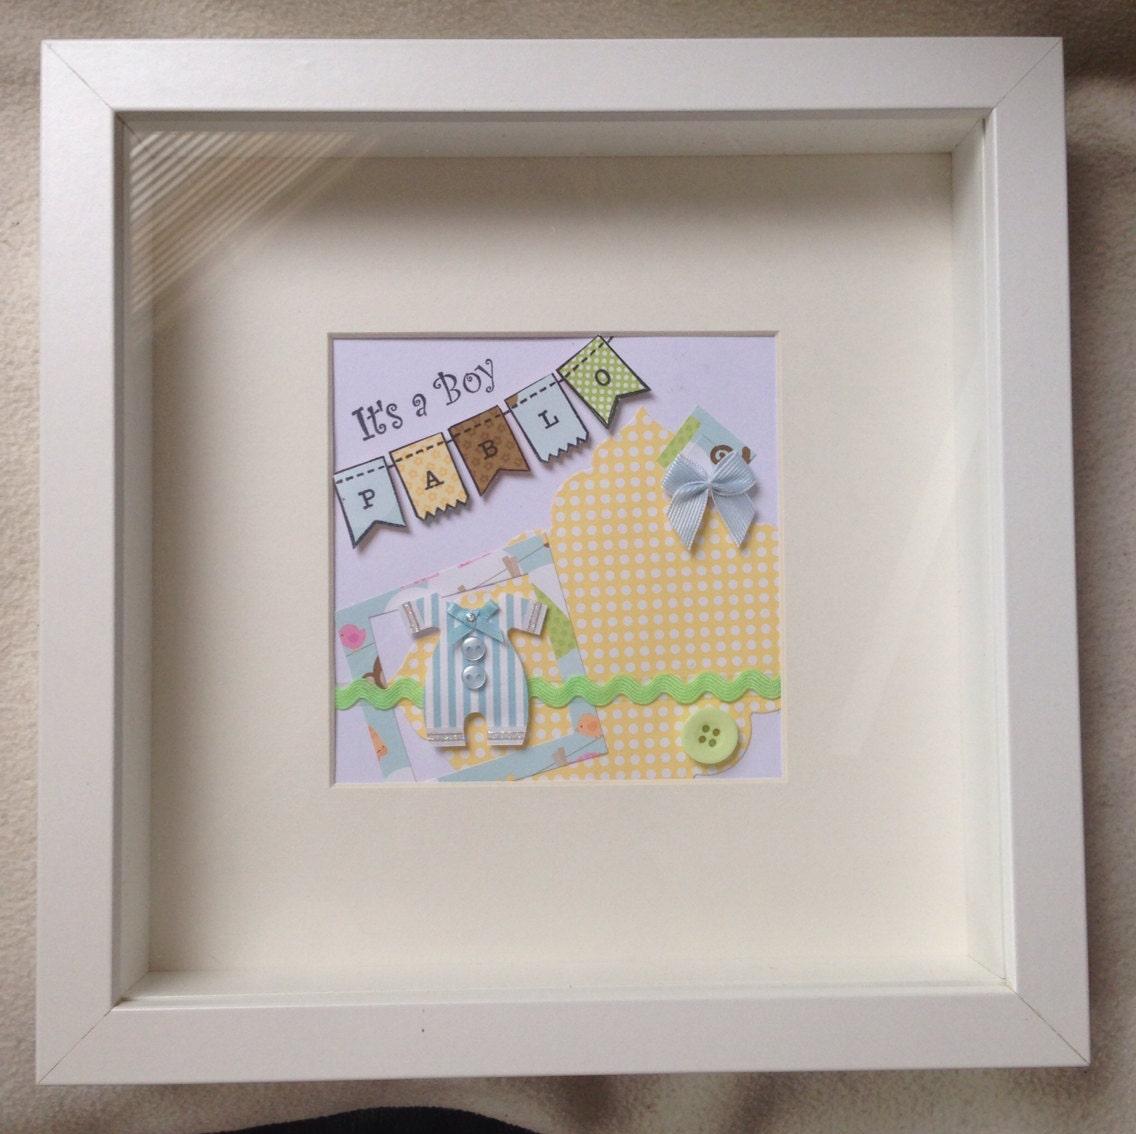 Just Had A Baby Gift Ideas : Personalised gift framed picture new baby